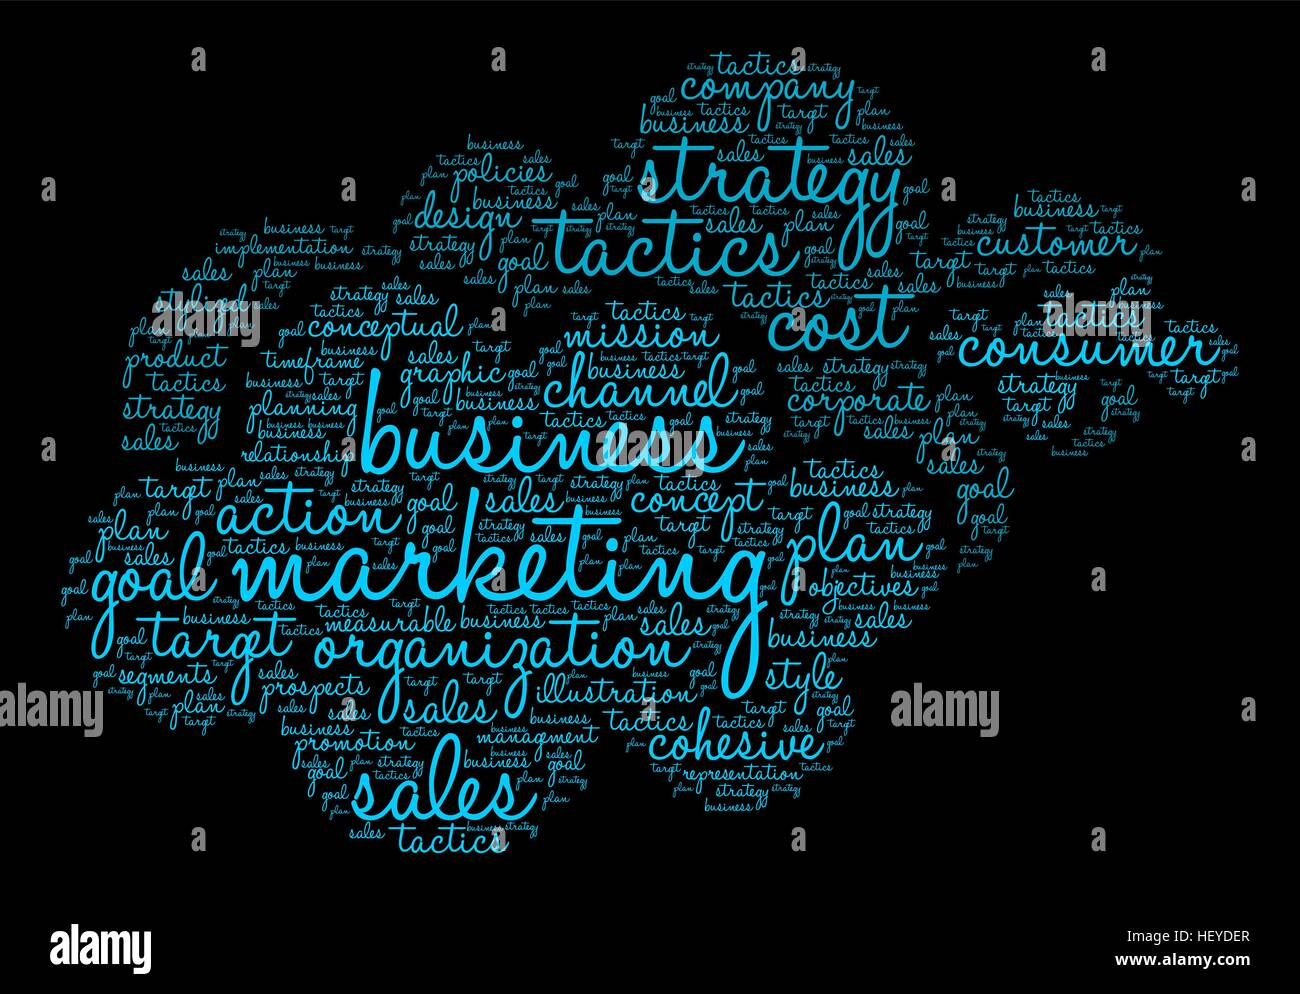 Marketing word cloud on a black background. - Stock Image